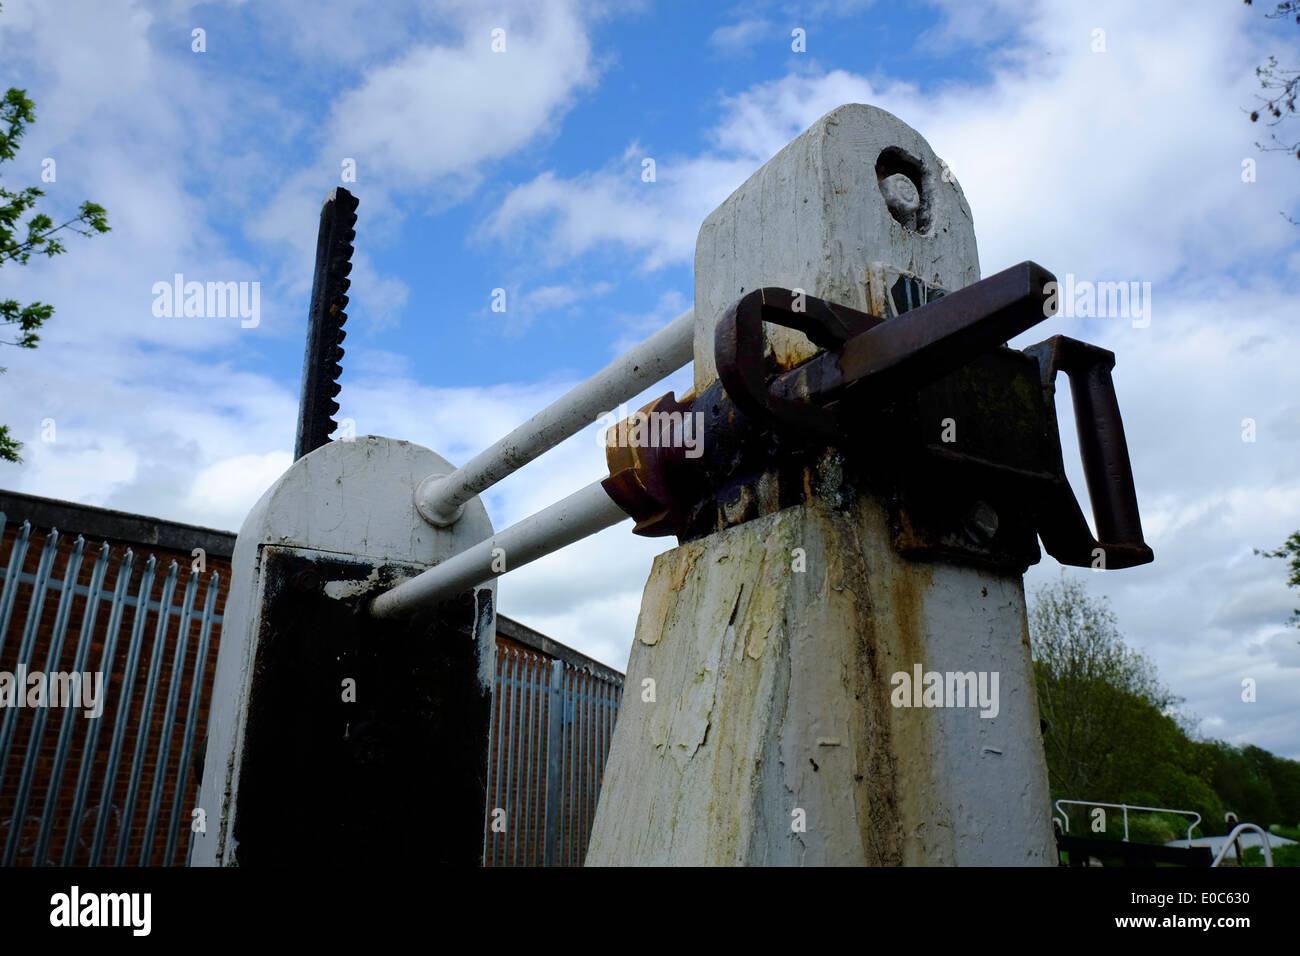 Canal lock valve mechanism on Grand Union Canal, Aylesbury - Stock Image